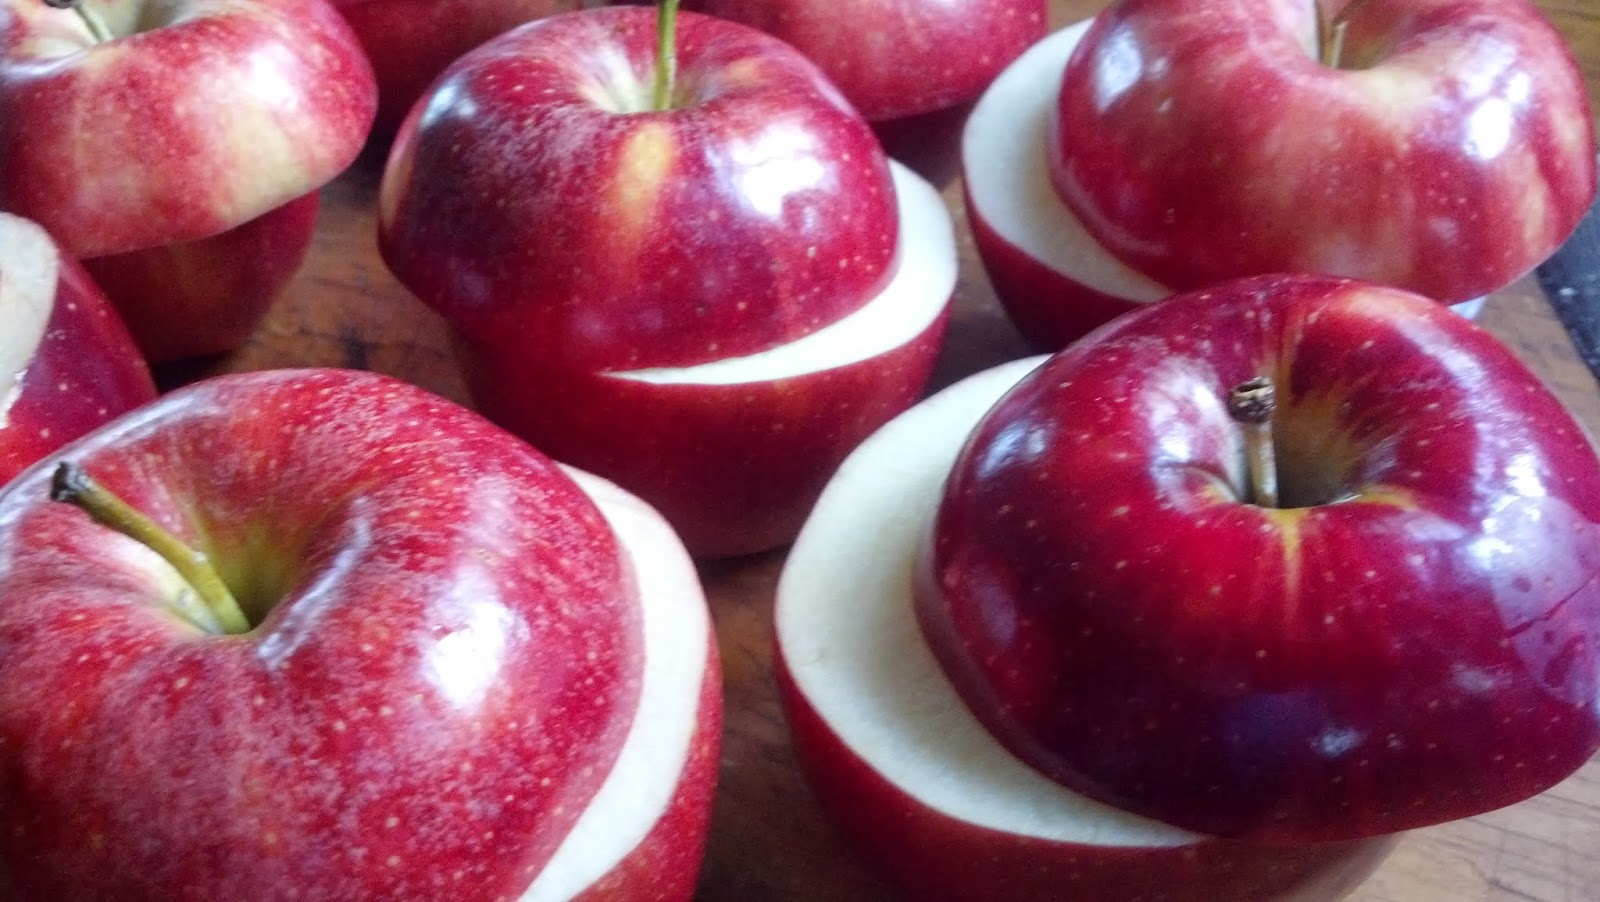 salted sugared spiced™: Baked Apples a la Mode